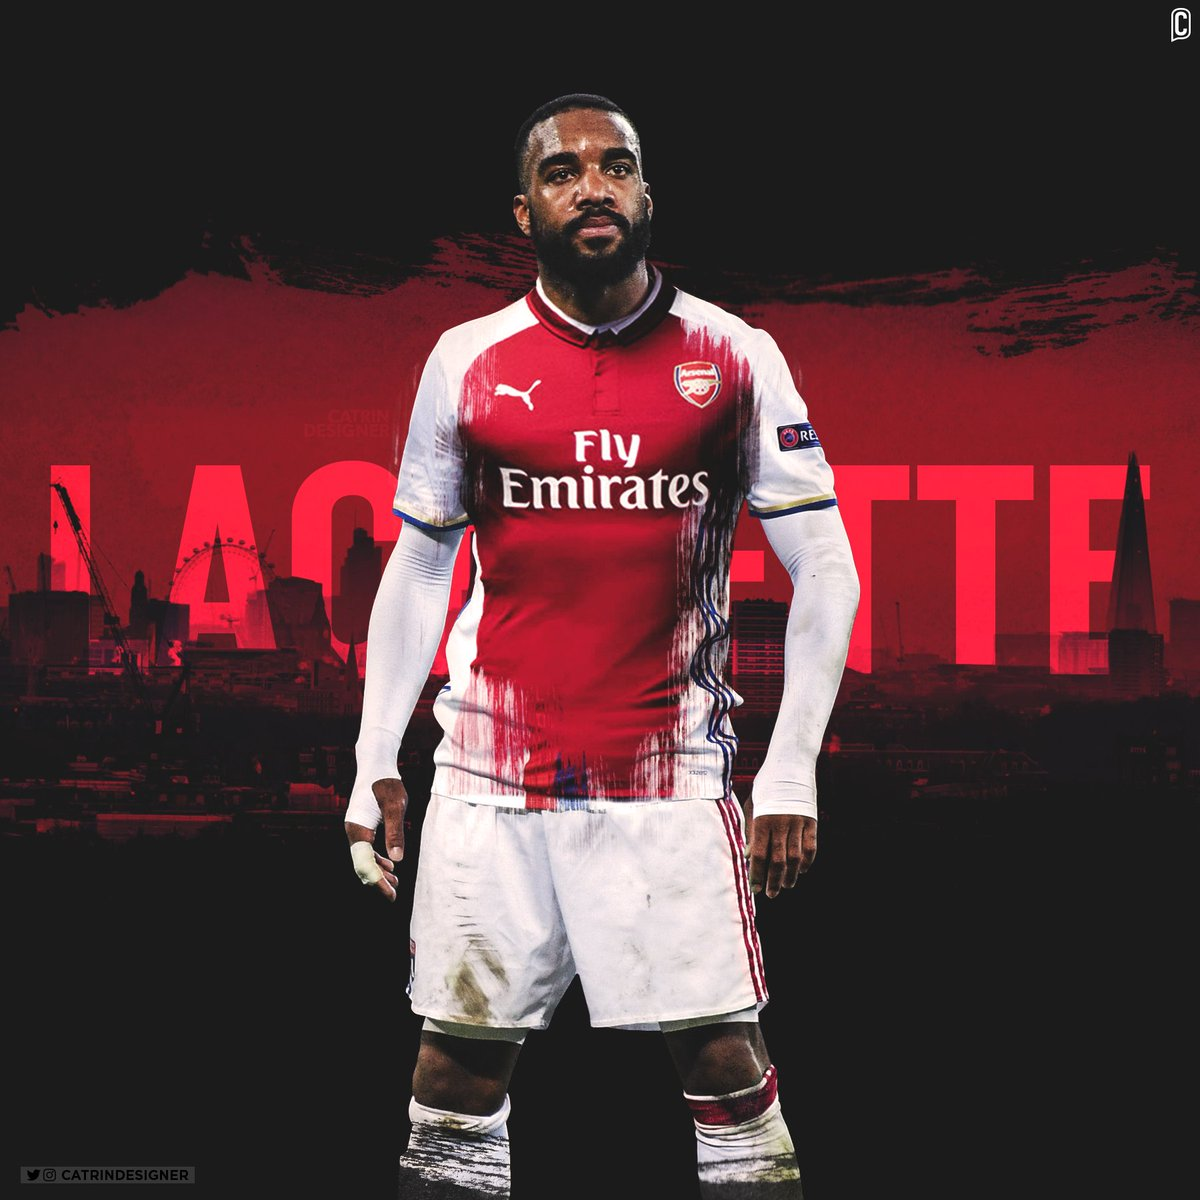 Catrin On Twitter Arsenal S Newest Signing Alexandre